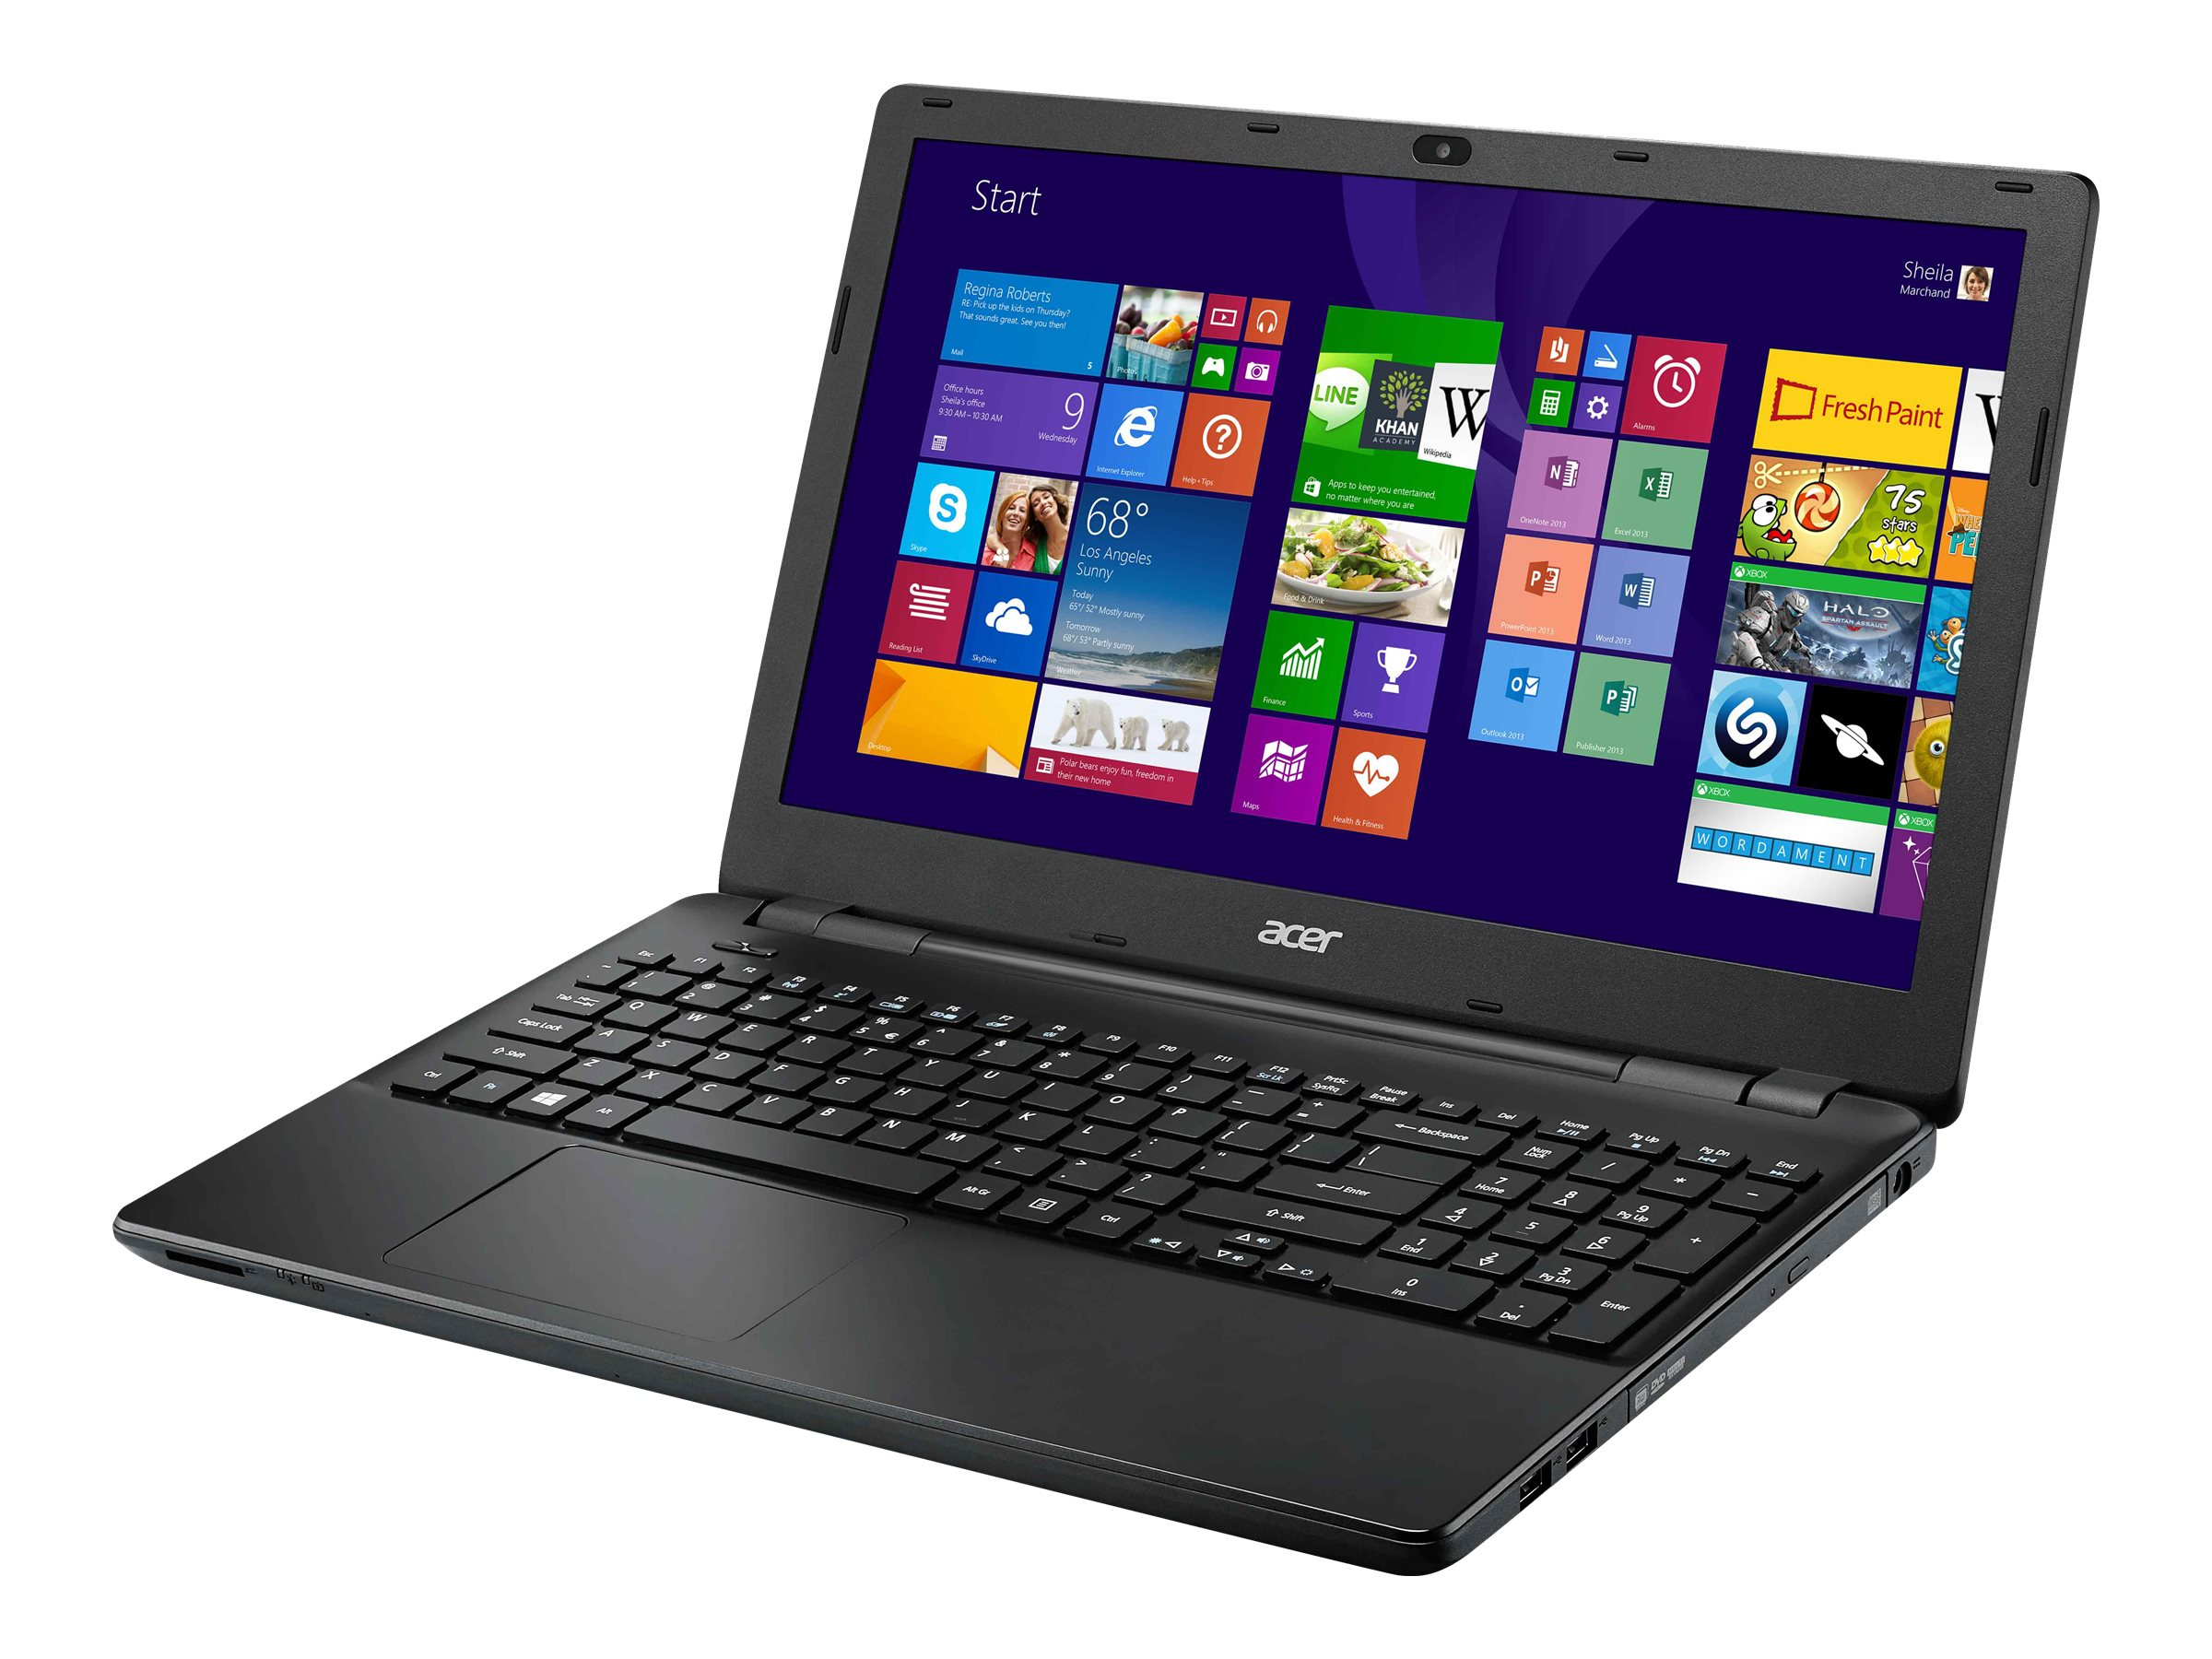 Acer Genuis Buy TravelMate P256-M-36DP 1.9GHz Core i3 15.6in display, NX.V9MAA.005, 17771573, Notebooks